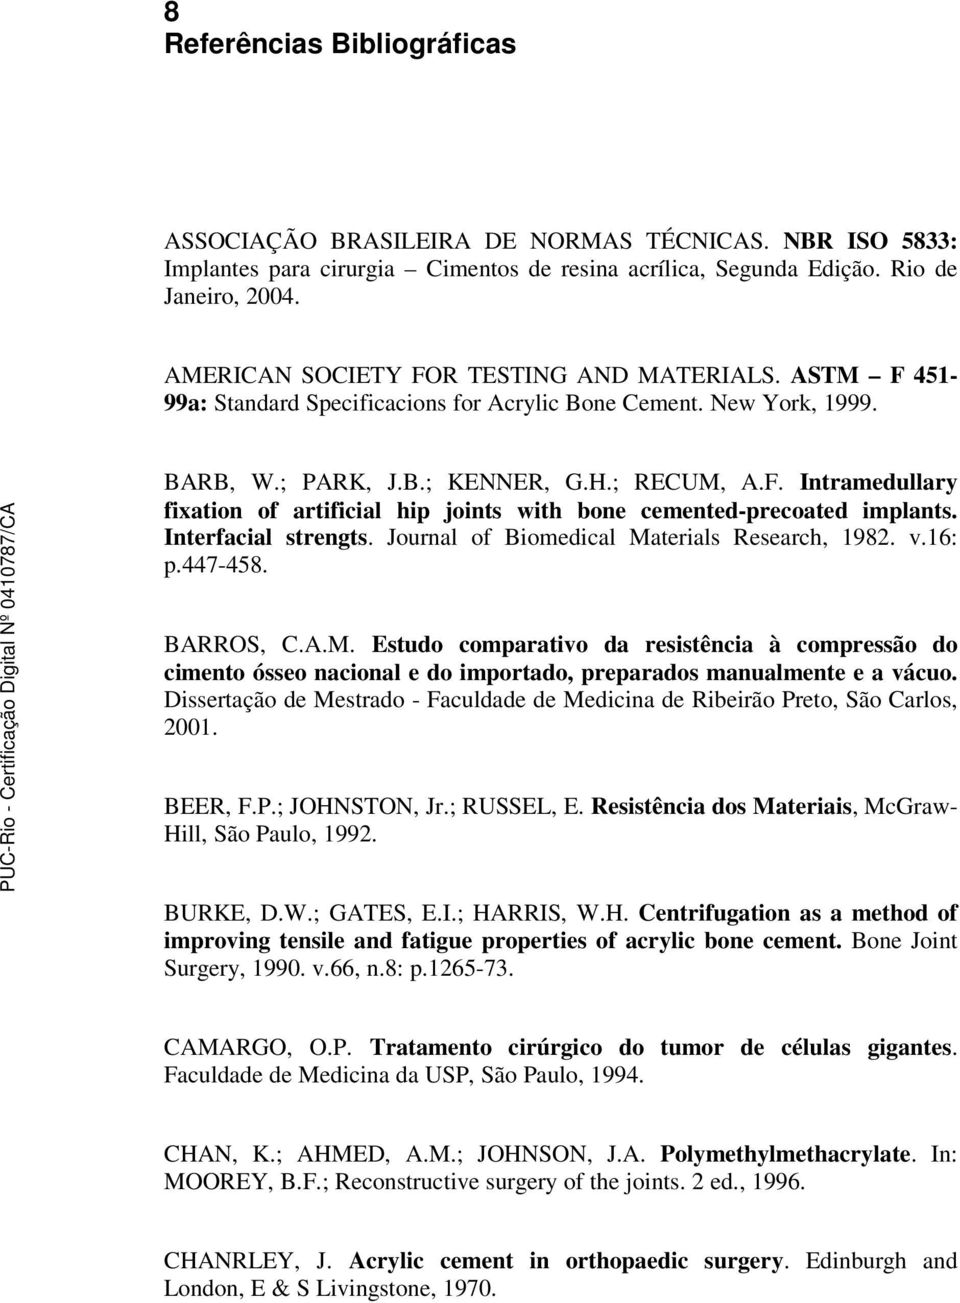 Interfacial strengts. Journal of Biomedical Materials Research, 1982. v.16: p.447-458. BARROS, C.A.M. Estudo comparativo da resistência à compressão do cimento ósseo nacional e do importado, preparados manualmente e a vácuo.